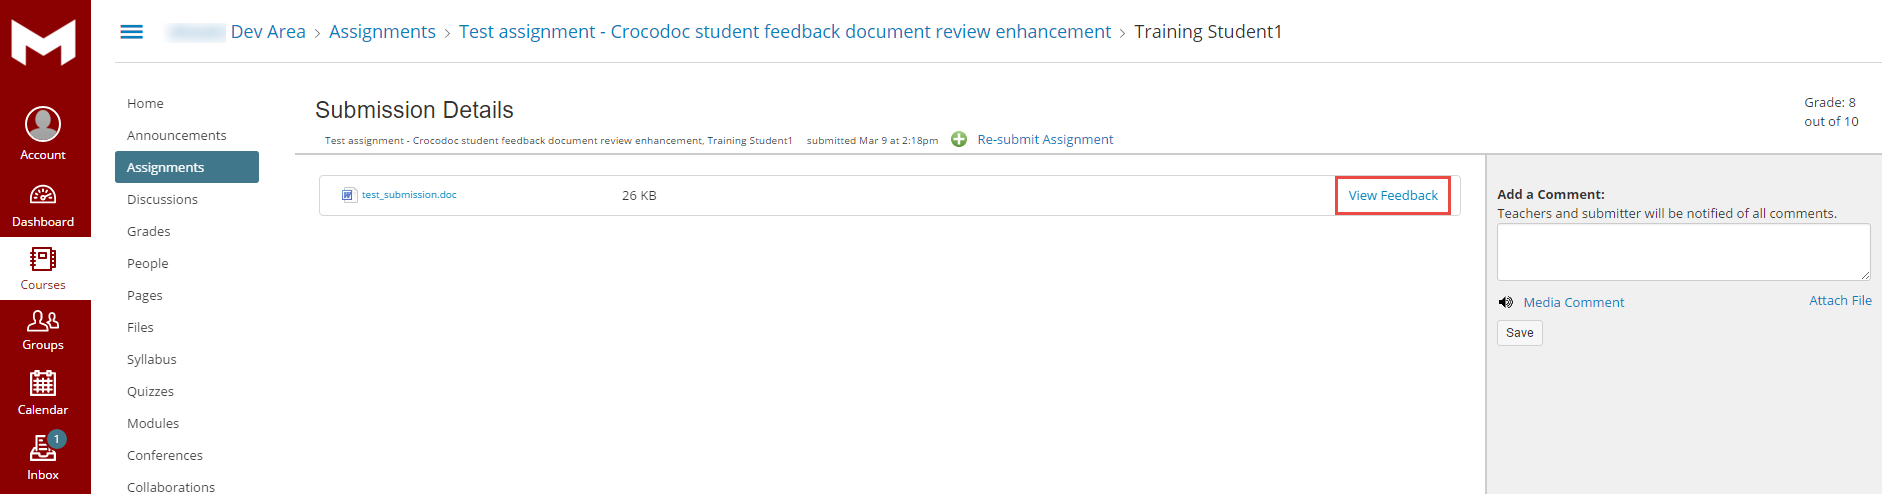 feedback_review_student